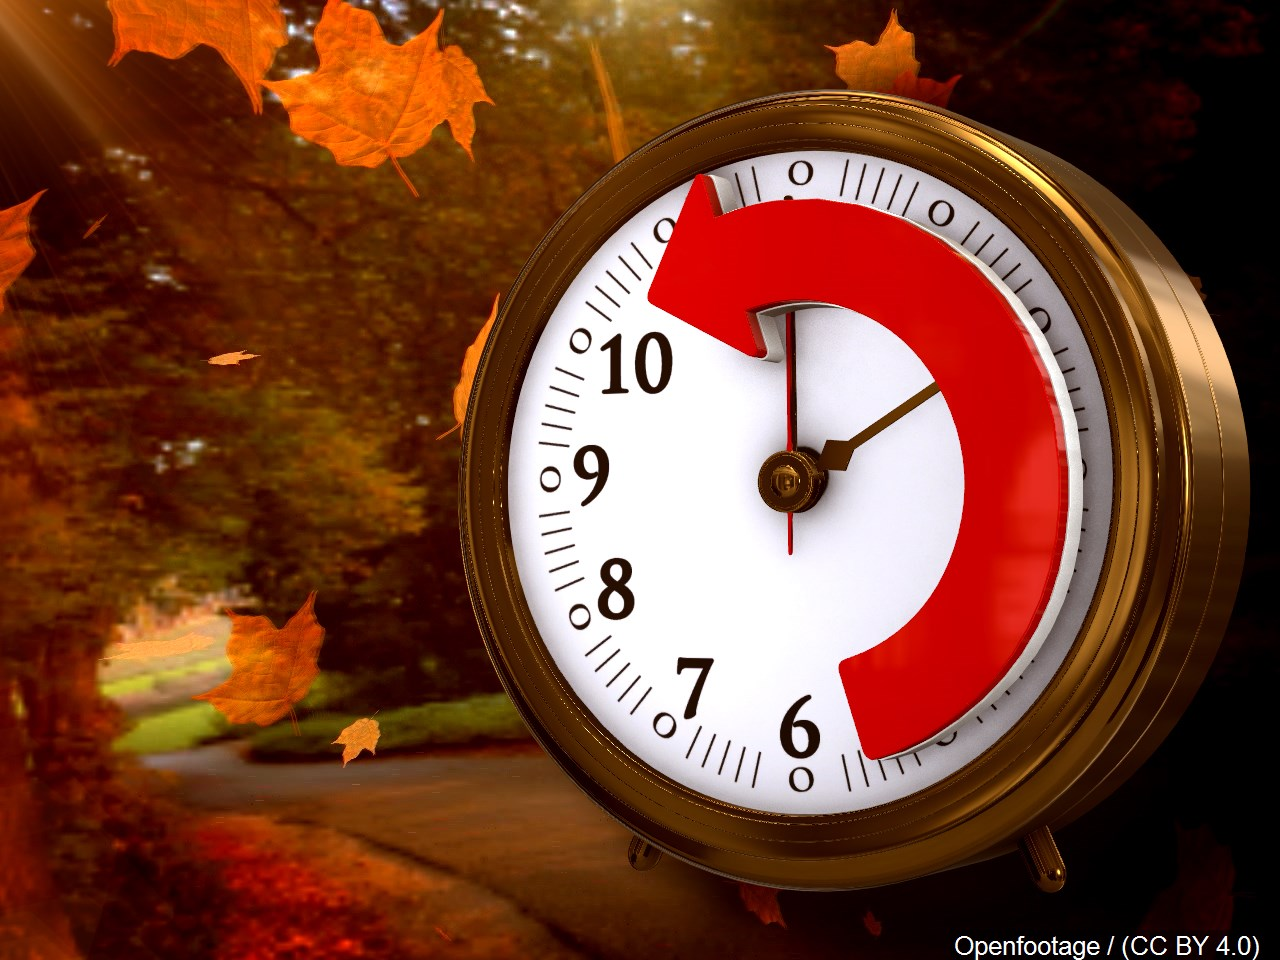 Wind Your Clock Back 1 Hour This Weekend Enjoy Extra Sleep